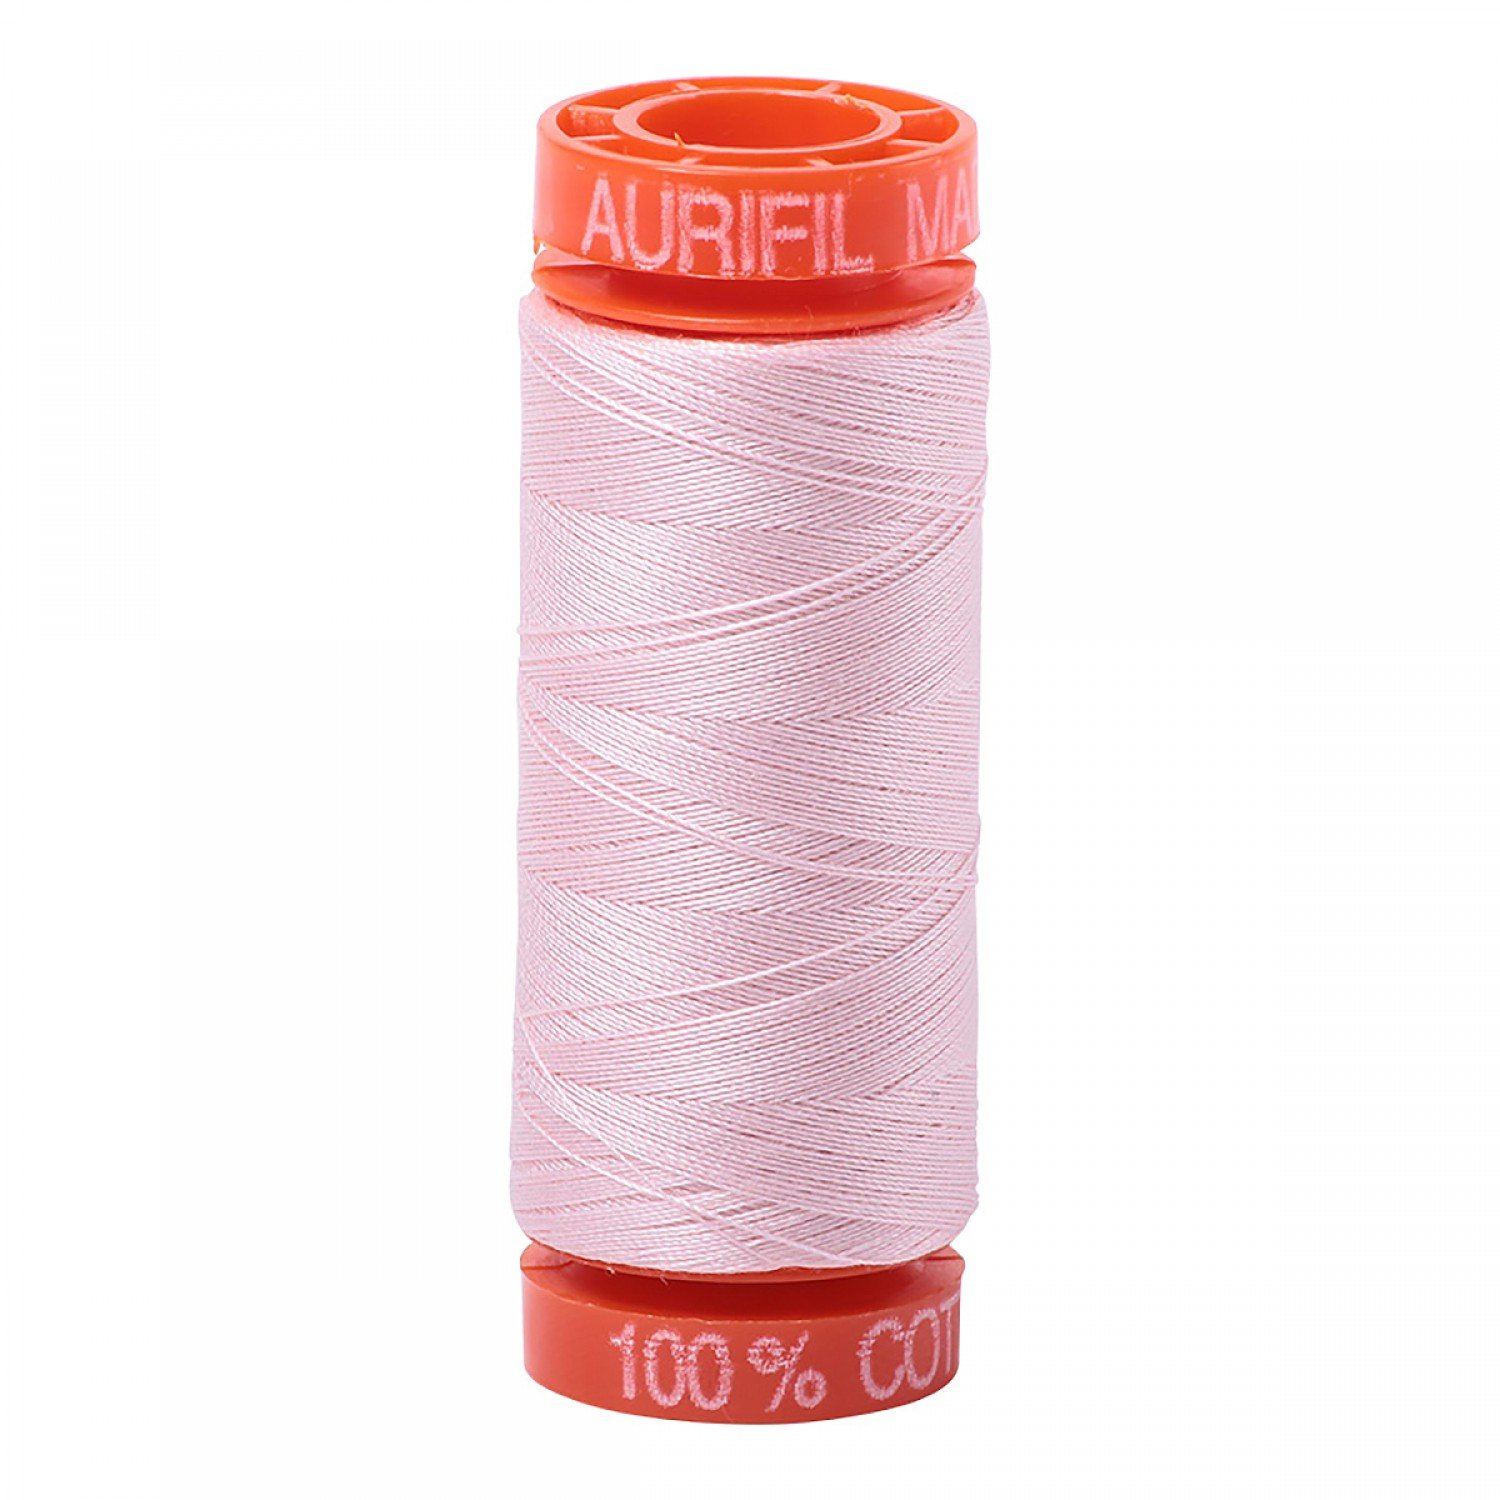 50 wt Aurifil - AS2410 - Pale Pink*